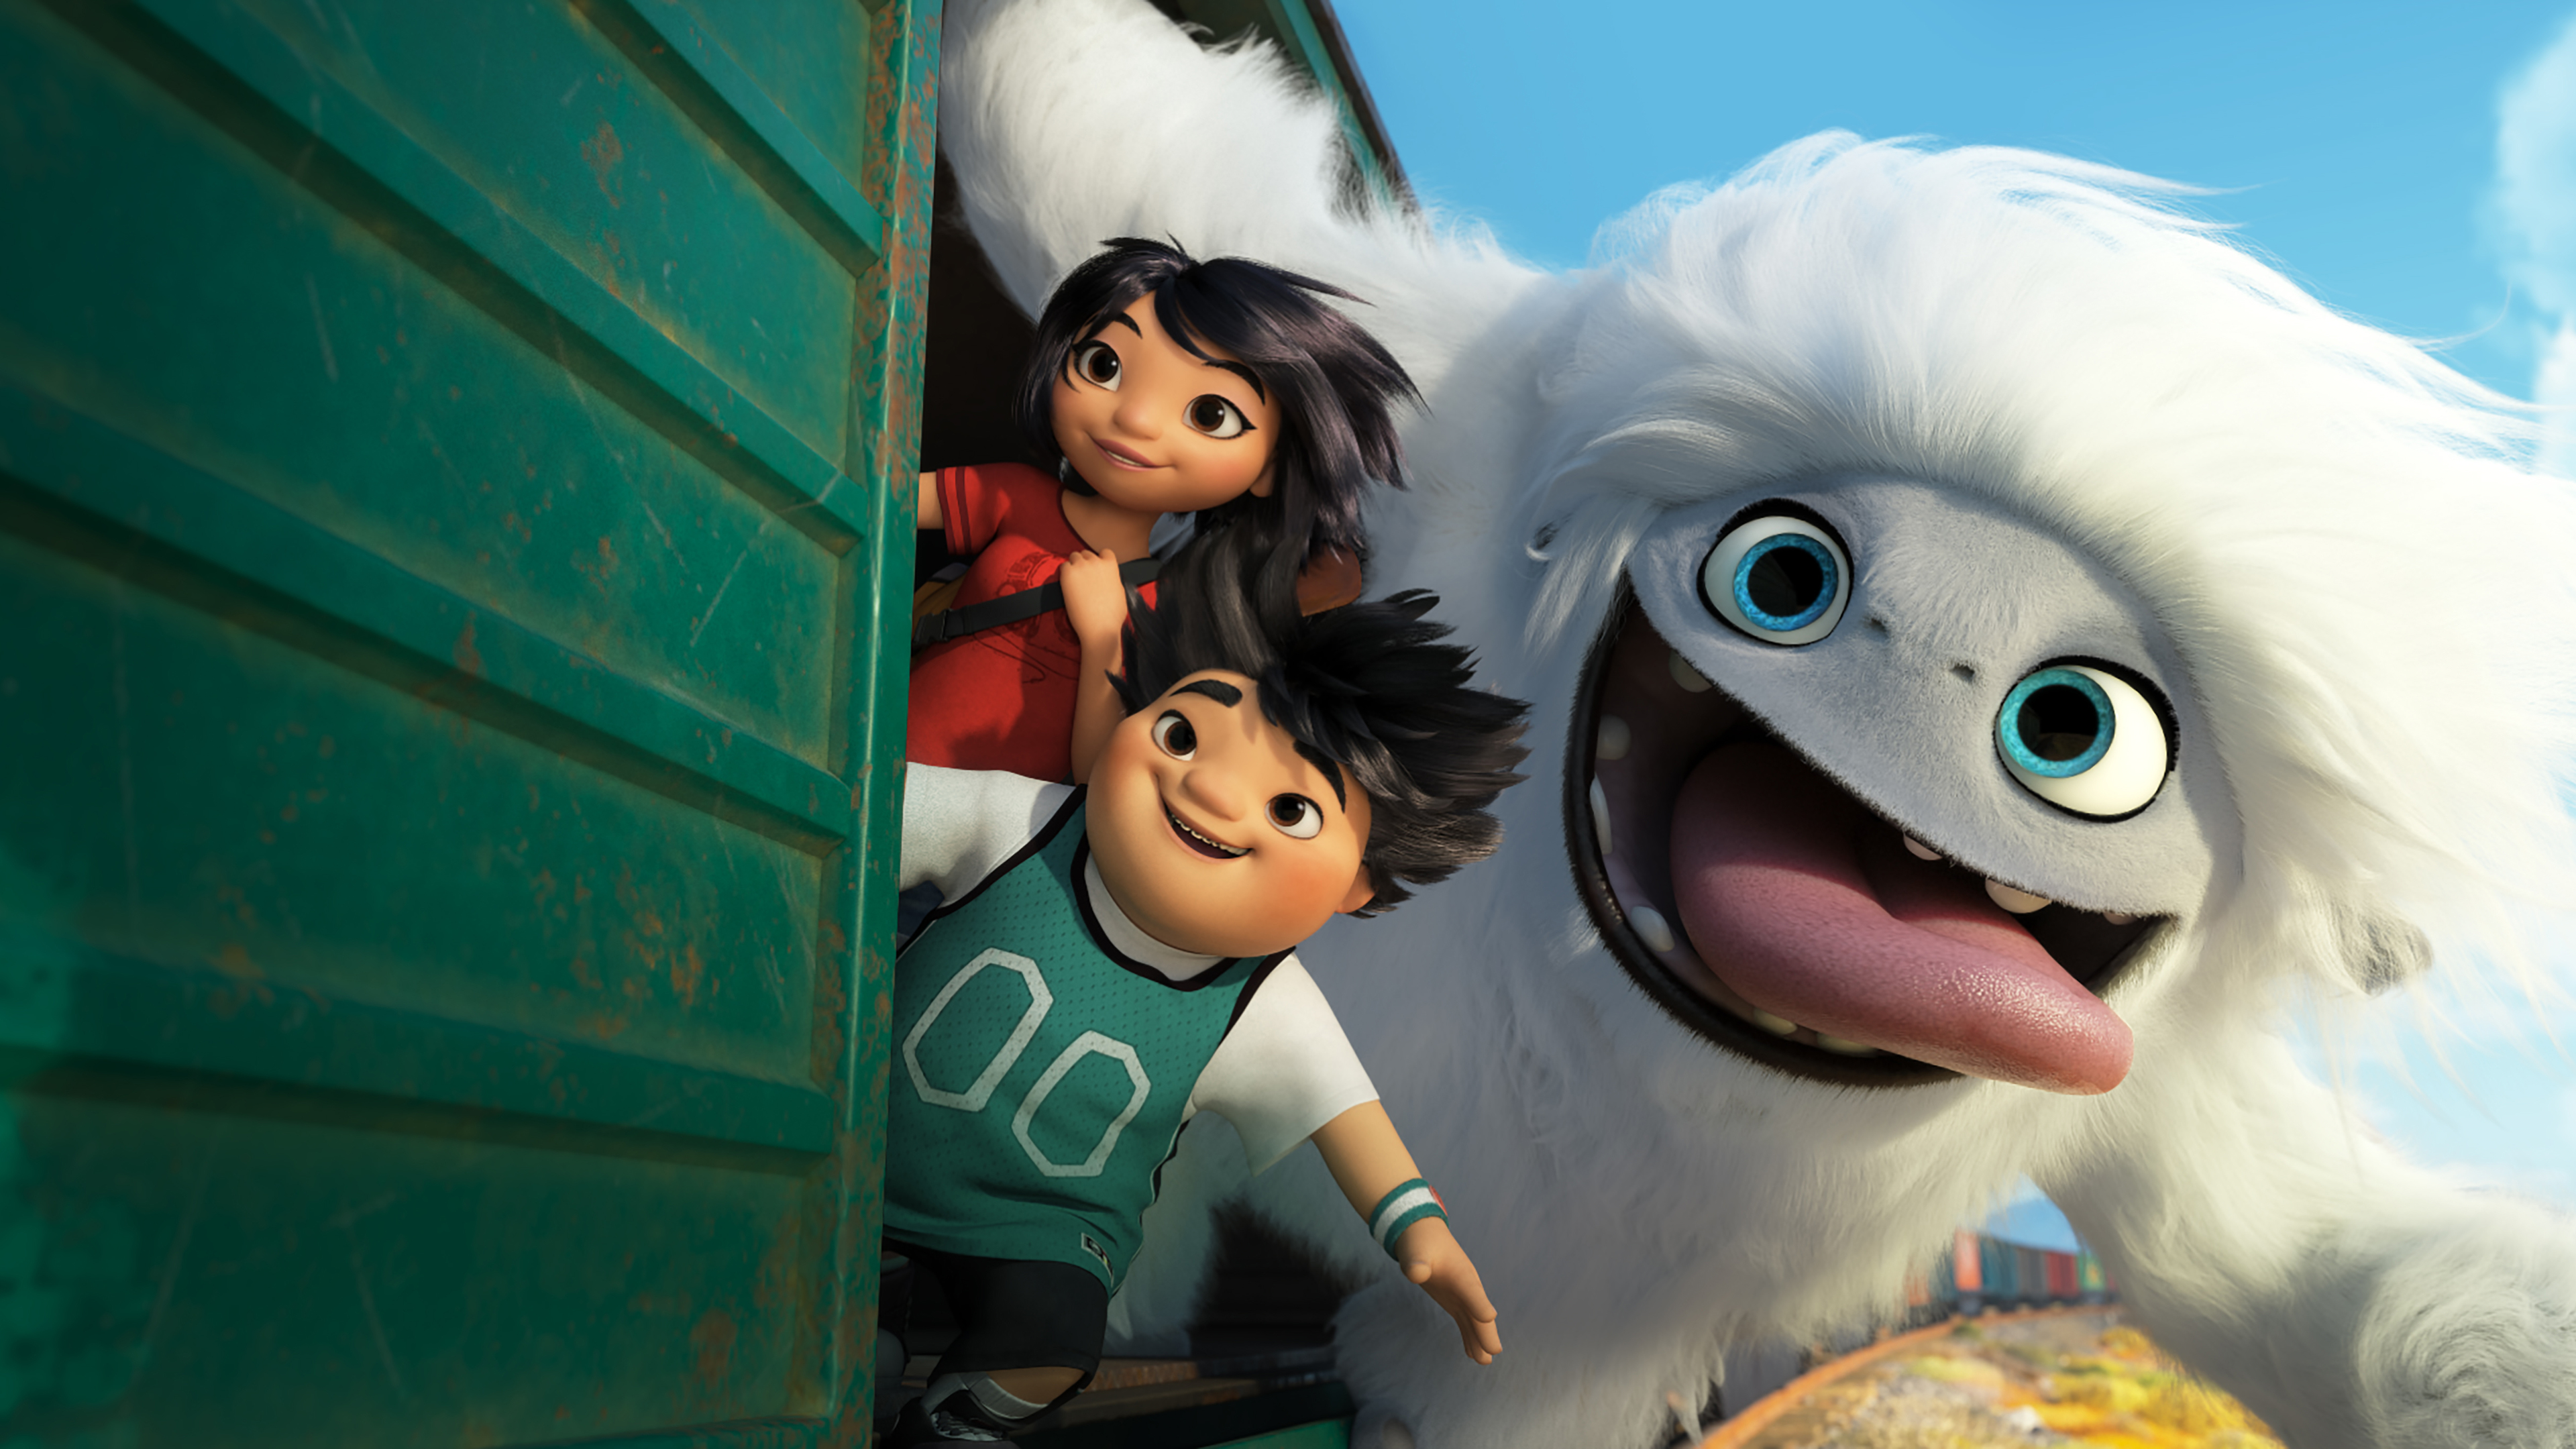 abominable 1572370950 - Abominable - hd-wallpapers, animated movies wallpapers, abominable wallpapers, 5k wallpapers, 4k-wallpapers, 2019 movies wallpapers